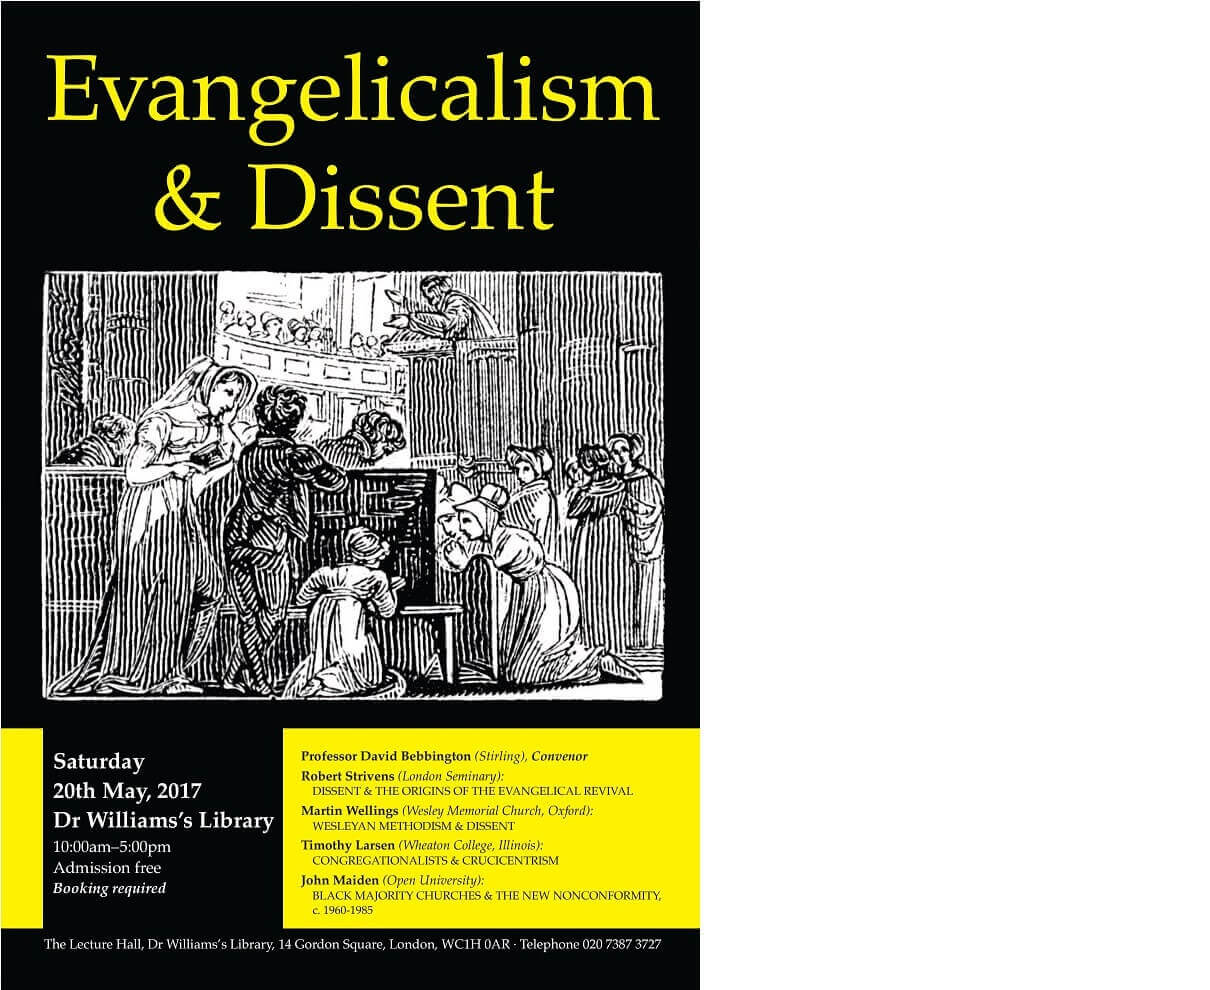 Evangelicalism and Dissent